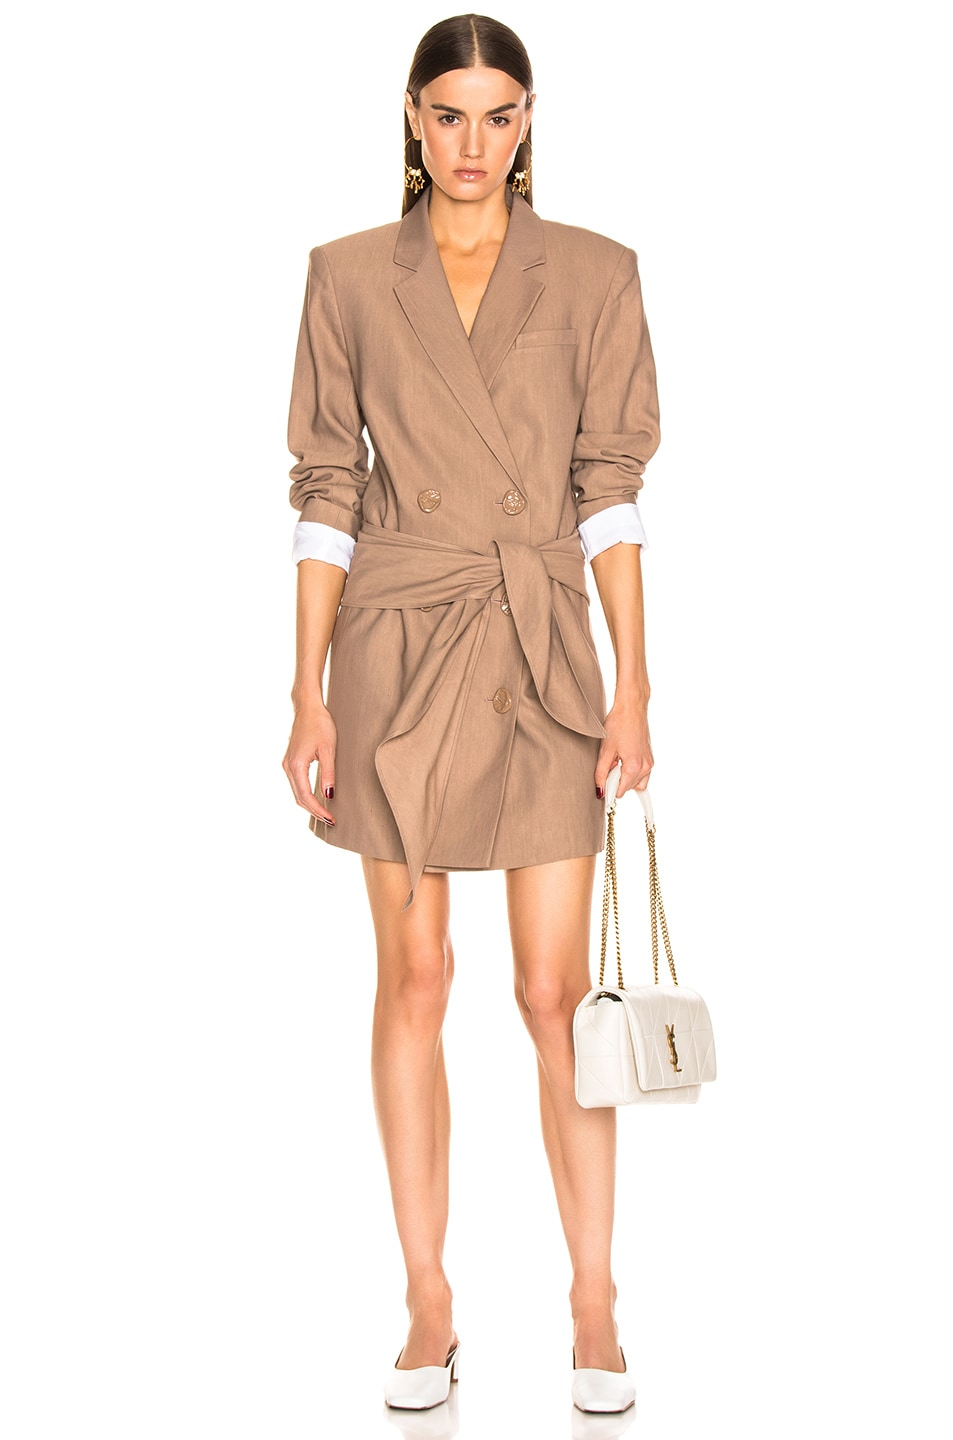 Image 1 of Tibi Linen Suiting Blazer Dress With Detachable Tie in Sable Brown